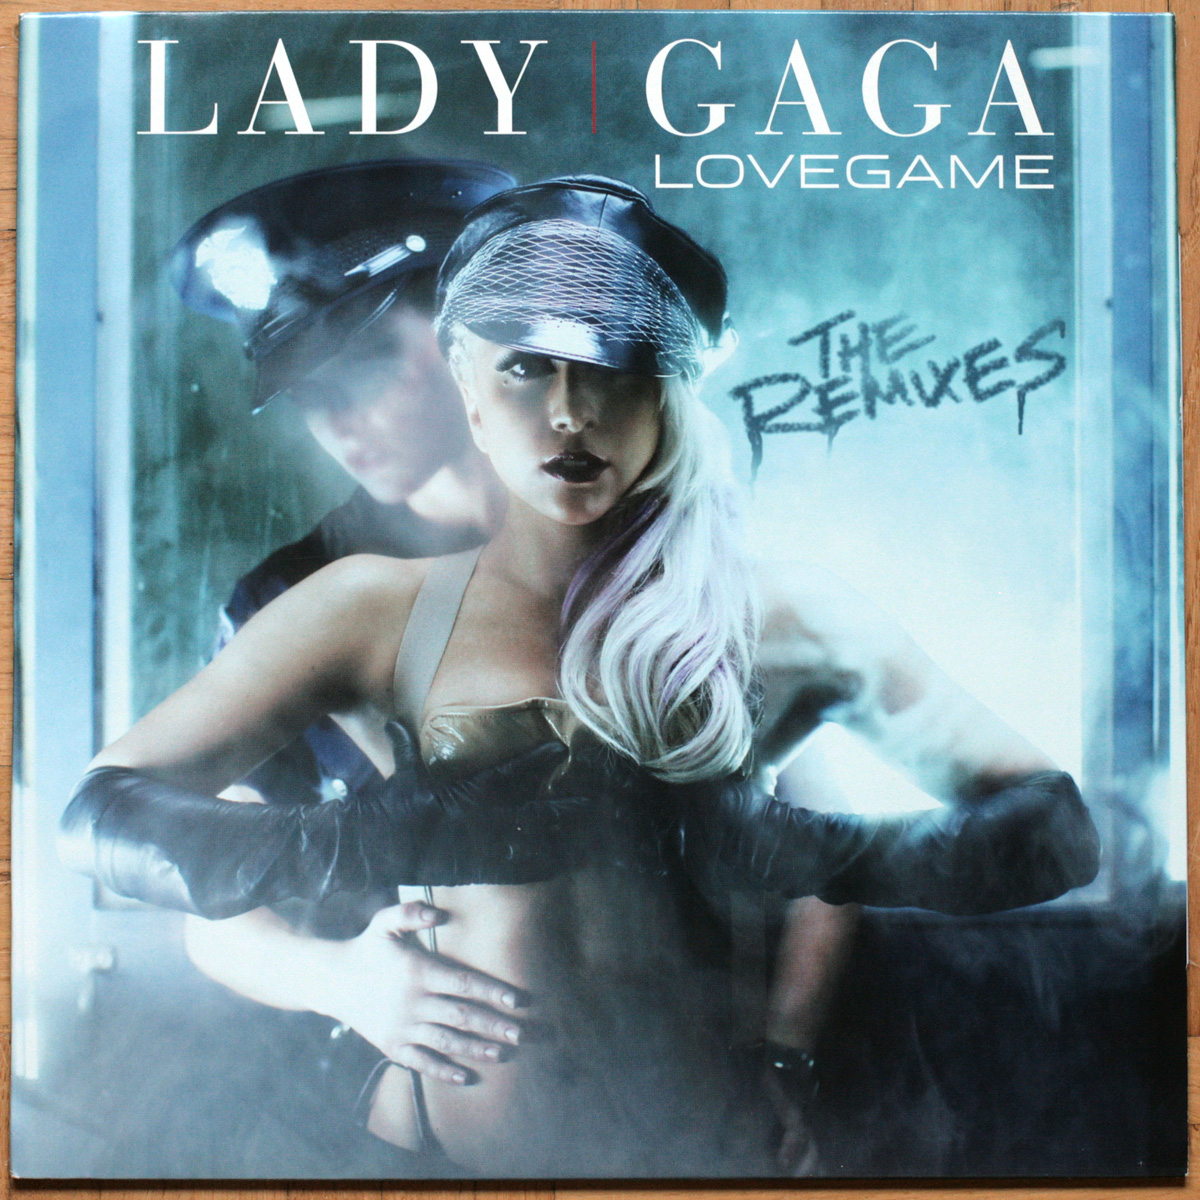 Lady Gaga ‎Lovegame The Remixes